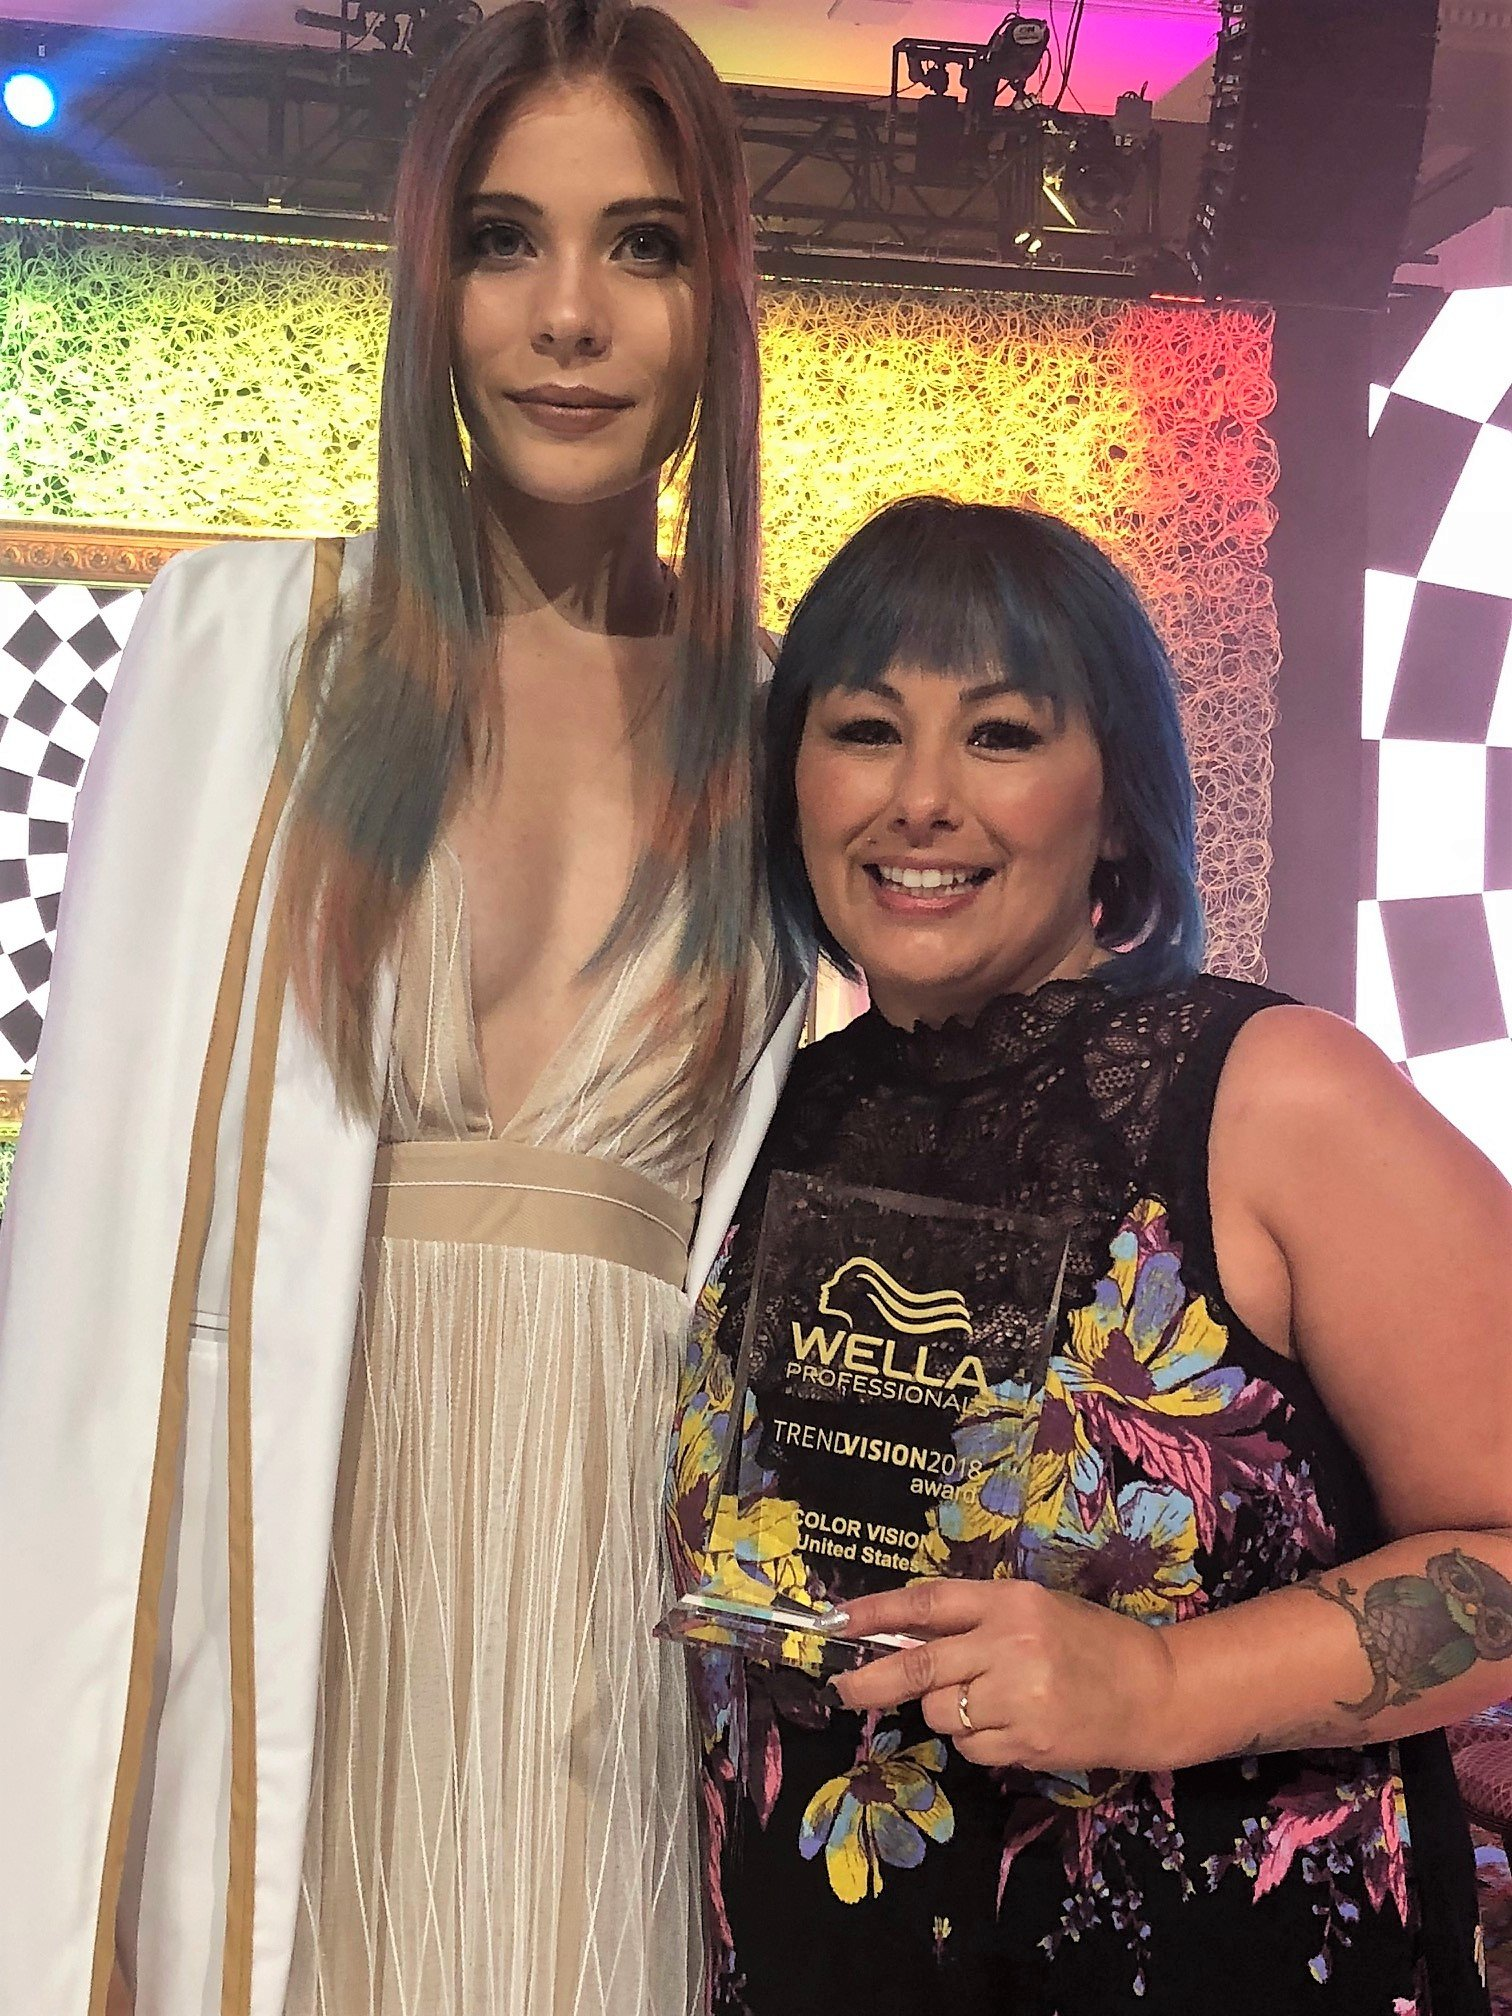 BREAKING NEWS: Winners of Wella Professionals North American TrendVision Awards Announced in Las Vegas